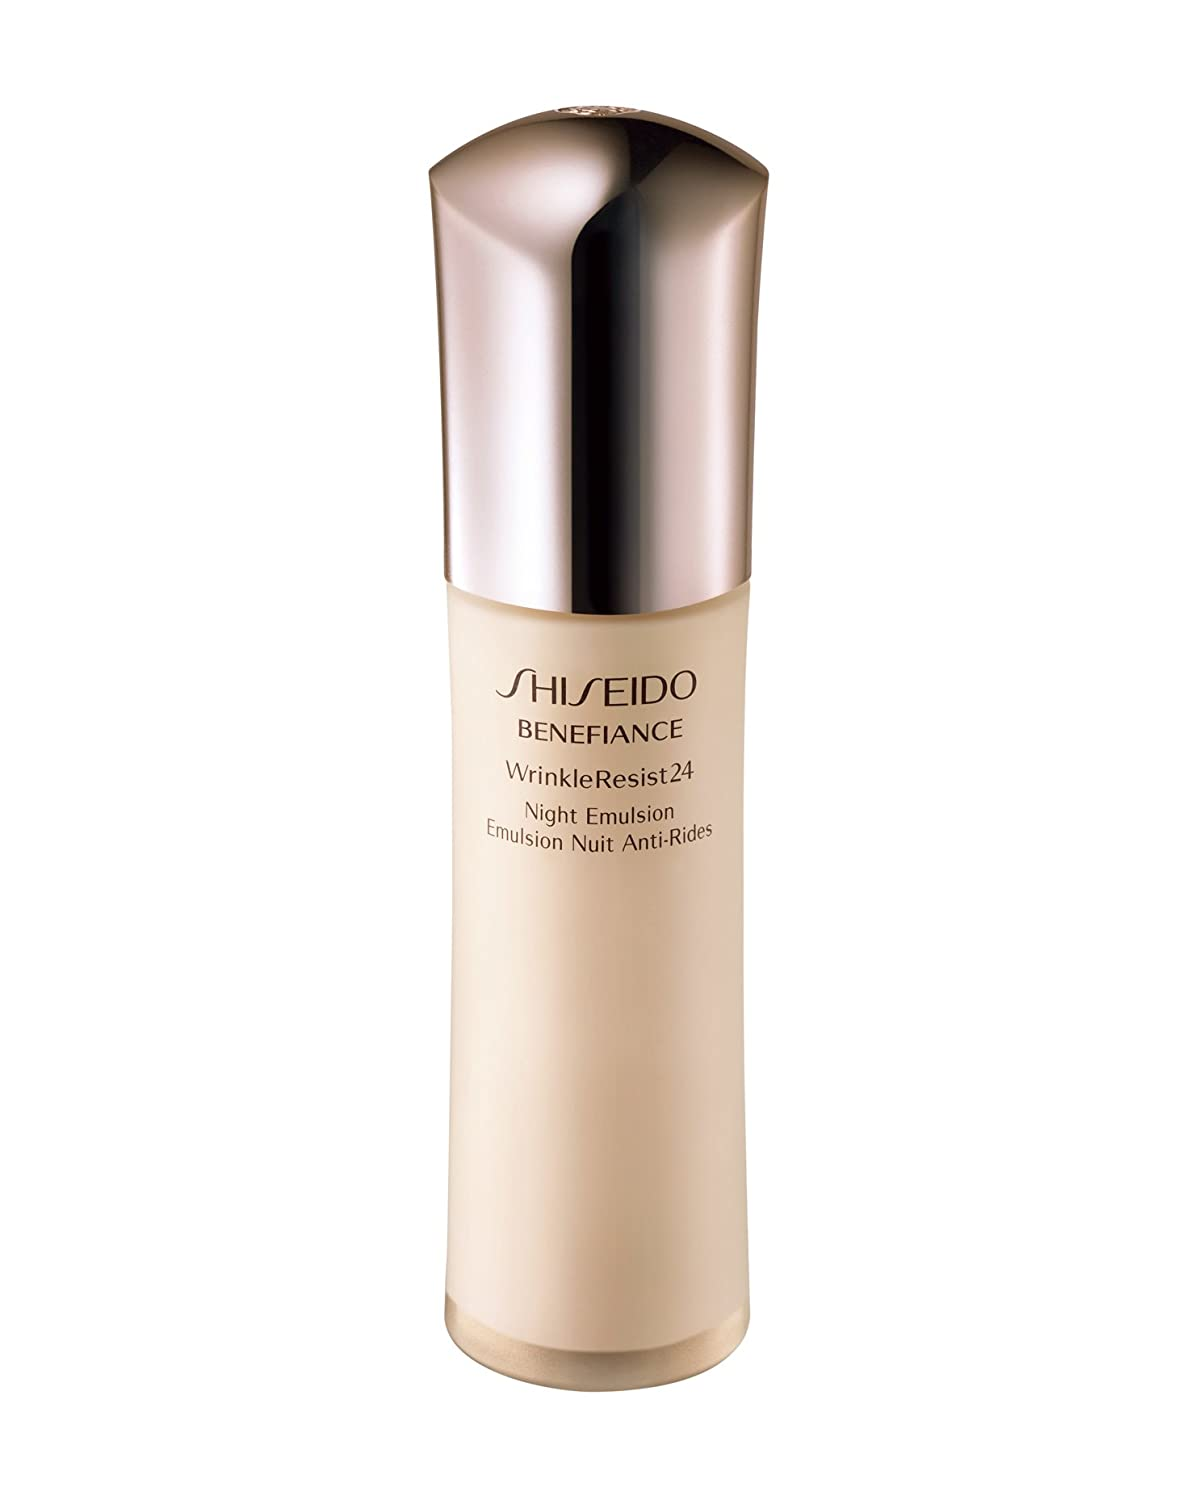 Shiseido Benefiance Wrinkle Resist 24 Night Emulsion for Unisex, 2.5 Ounce 730852103085 SHI10308_-75